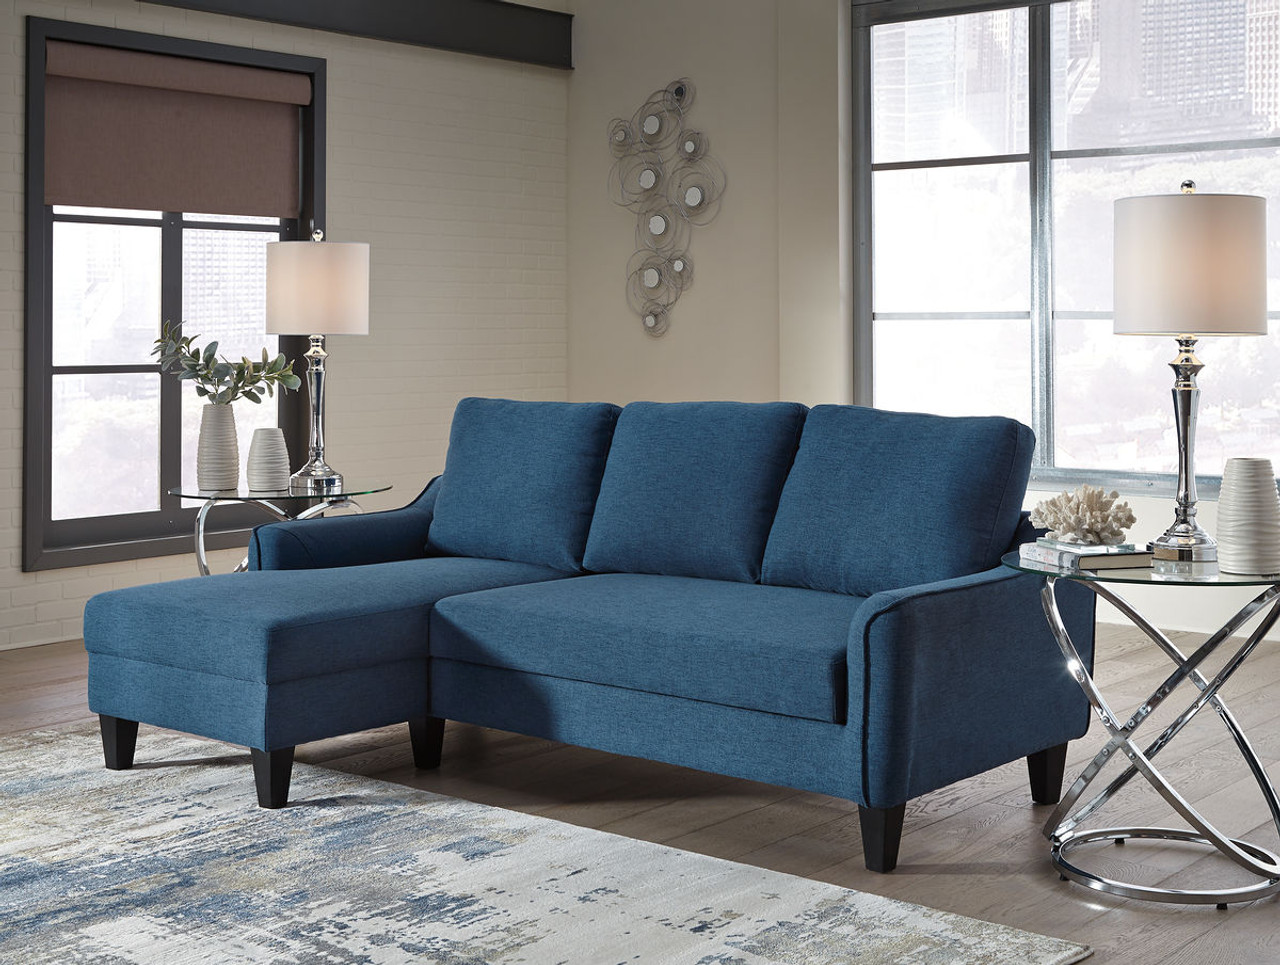 Admirable Jarreau Blue Queen Sofa Sleeper Gmtry Best Dining Table And Chair Ideas Images Gmtryco